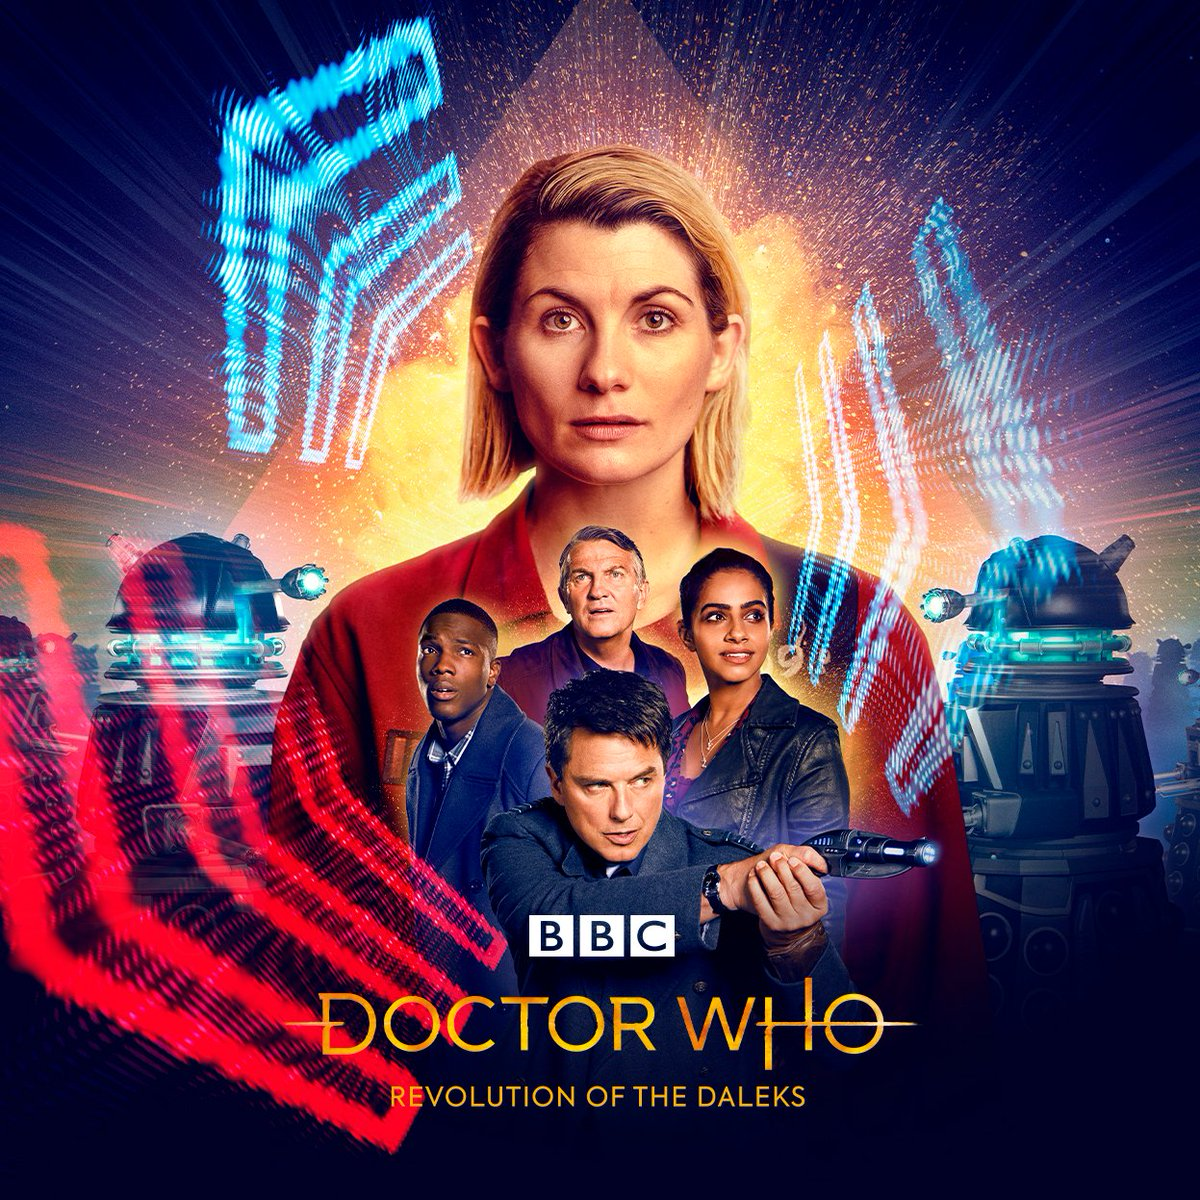 Replying to @bbcdoctorwho: #DoctorWho: Revolution of the Daleks. Coming soon.